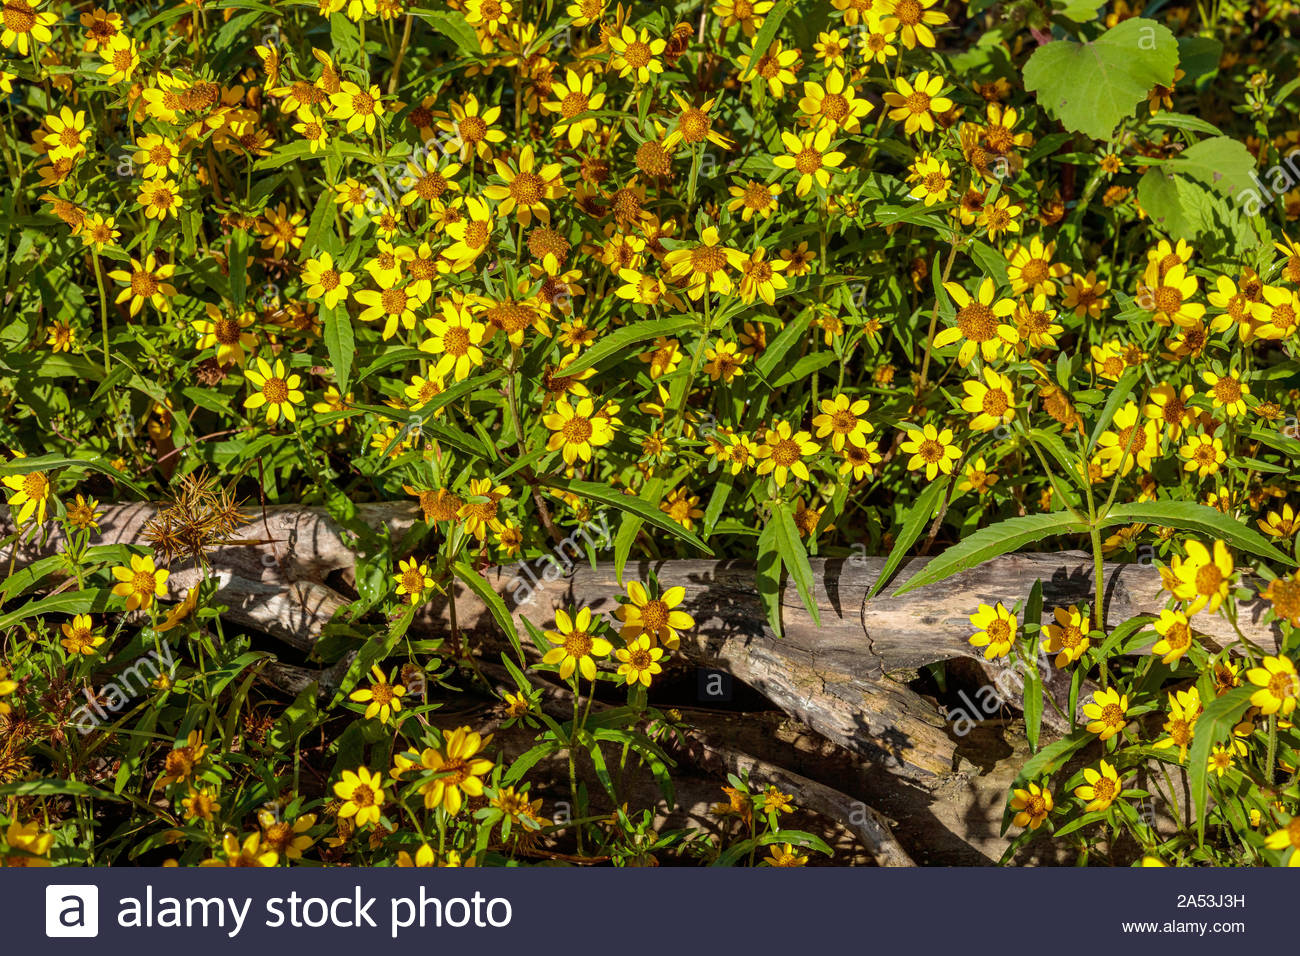 bidens-laevis-larger-bur-marigold-smooth